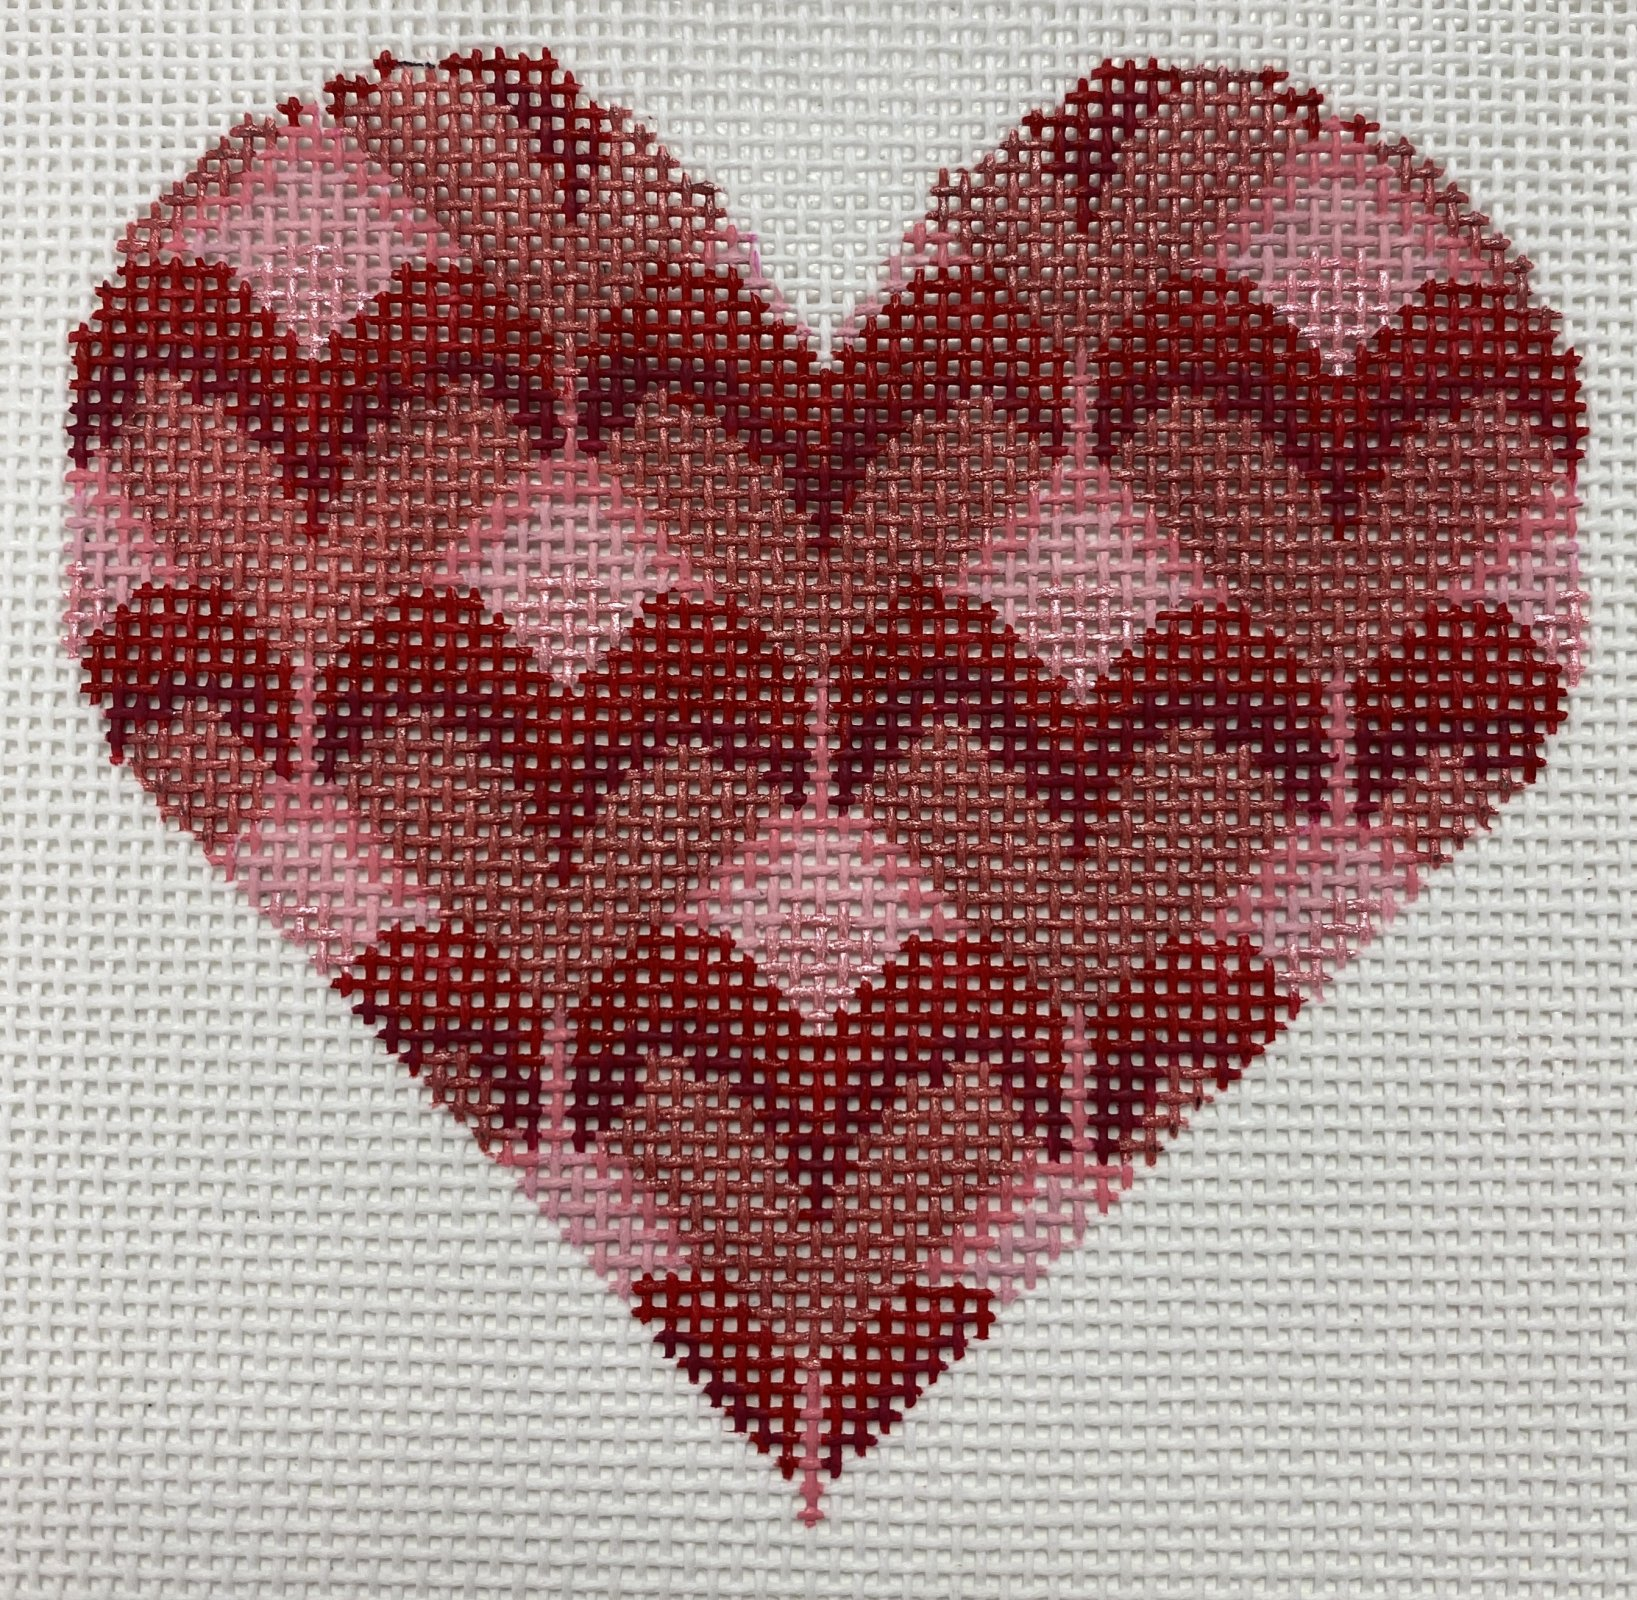 Pink/Red Heart,18 ct.,3.5